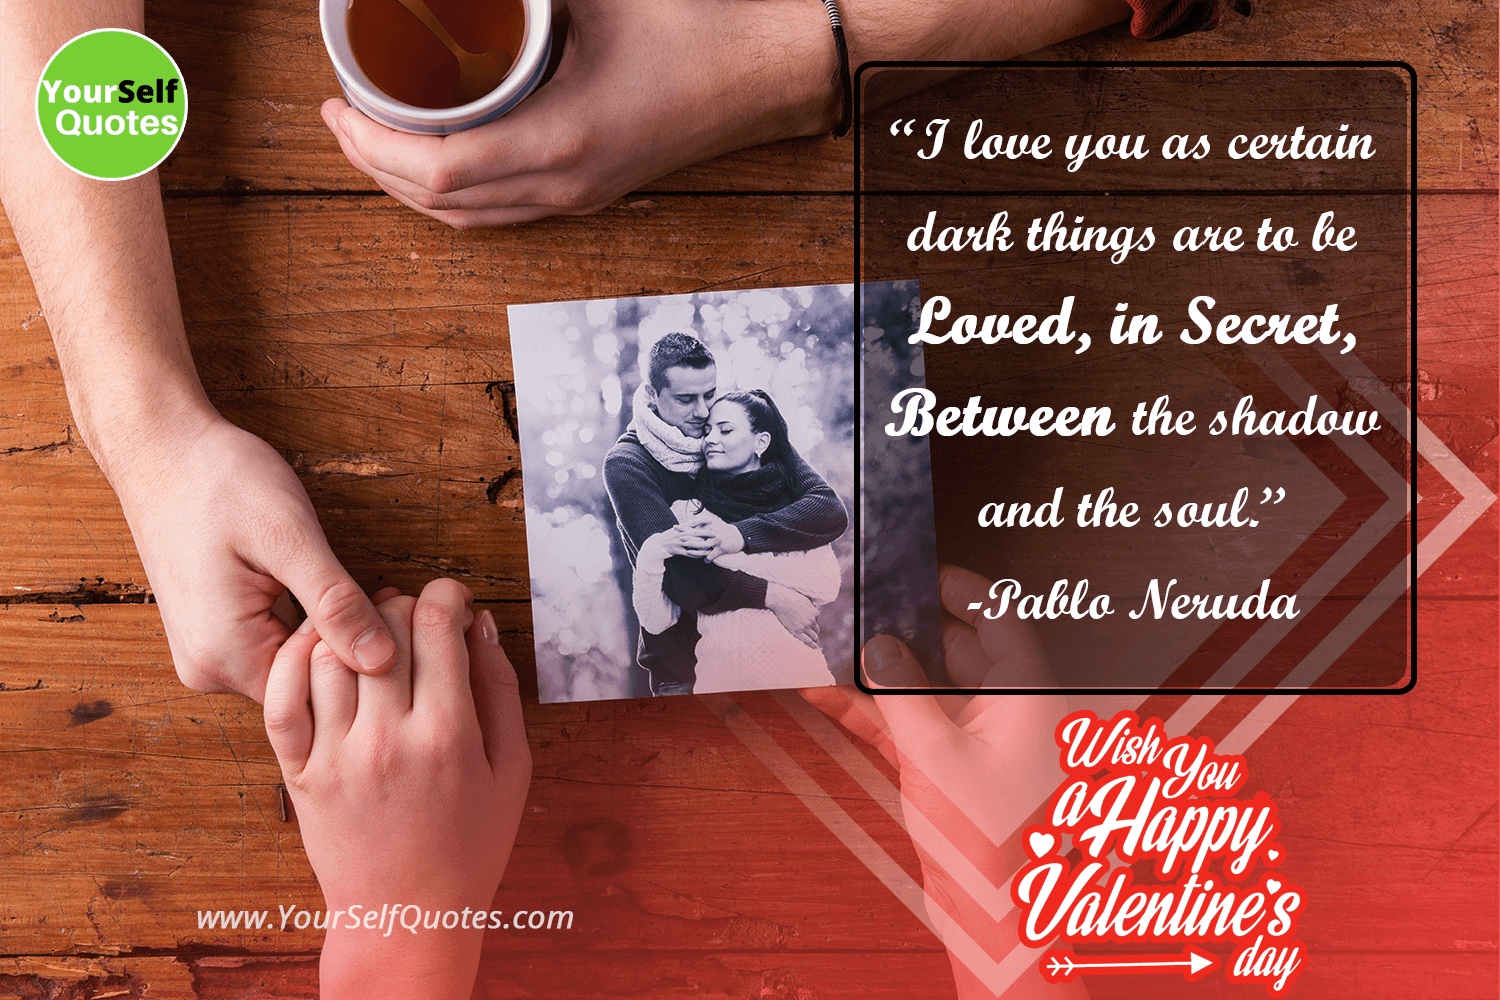 Valentine Day Quotes Images by Pablo Neruda